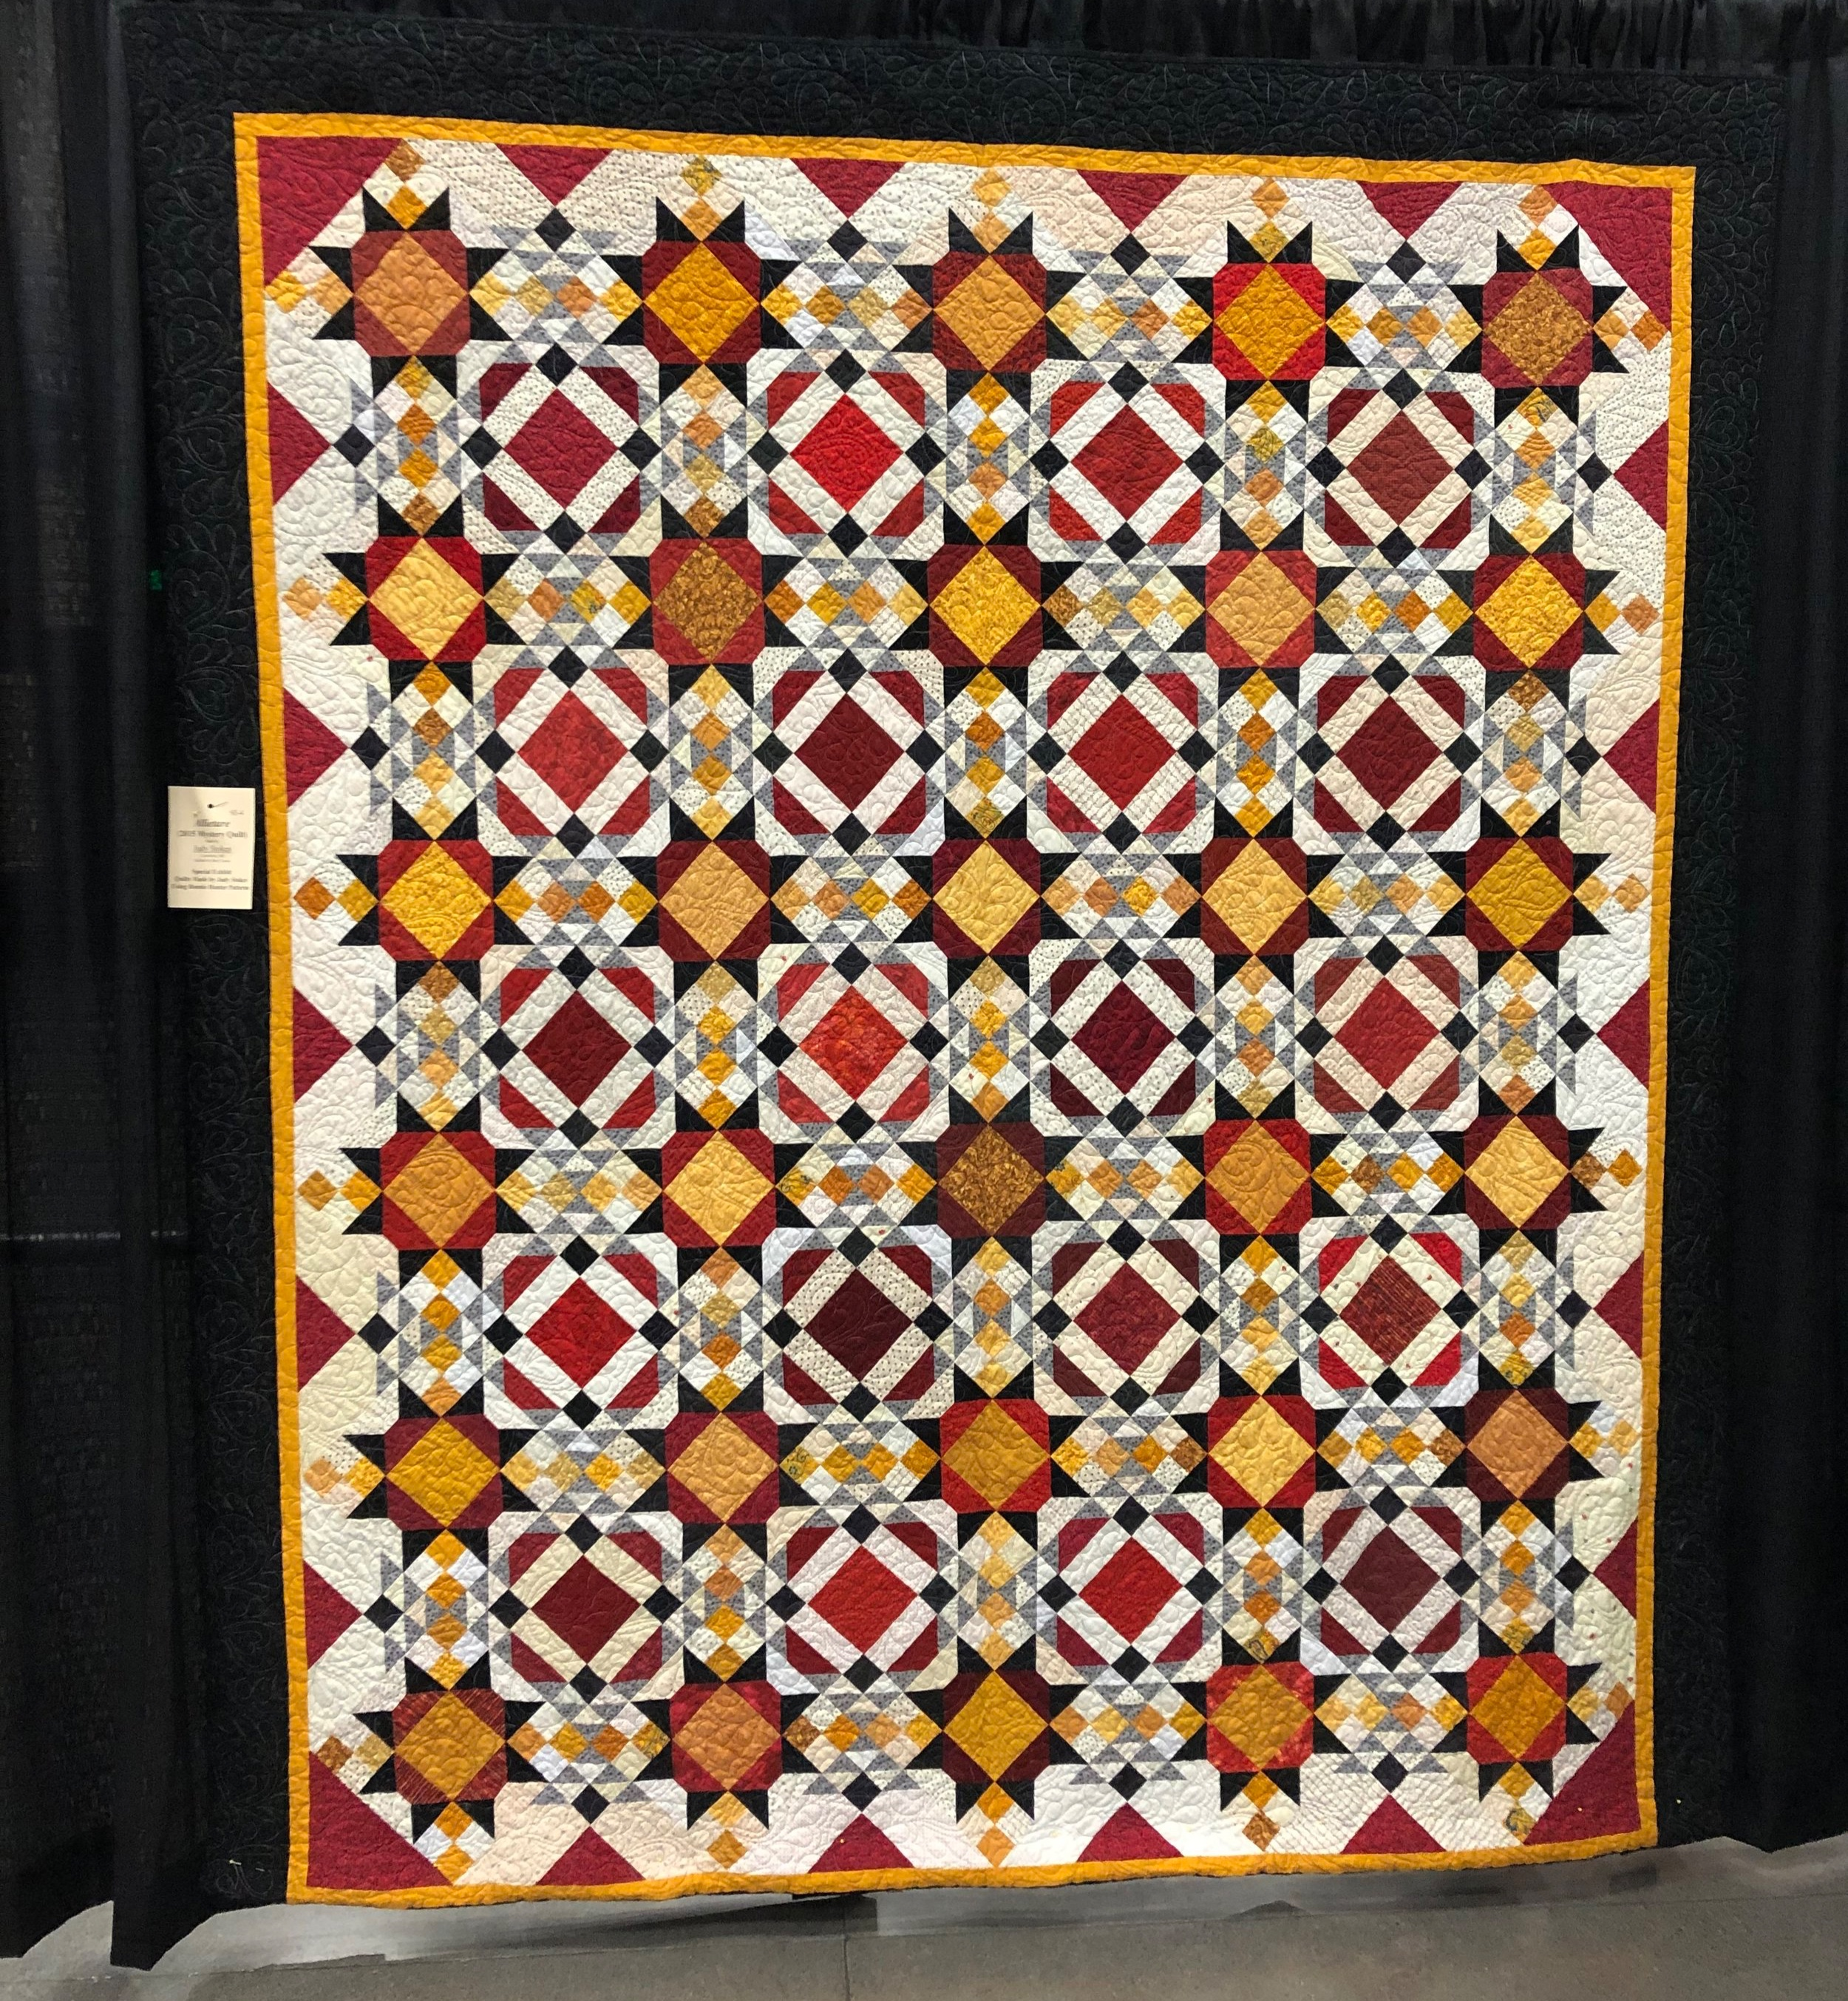 Allietare - Mystery Quilt 2015